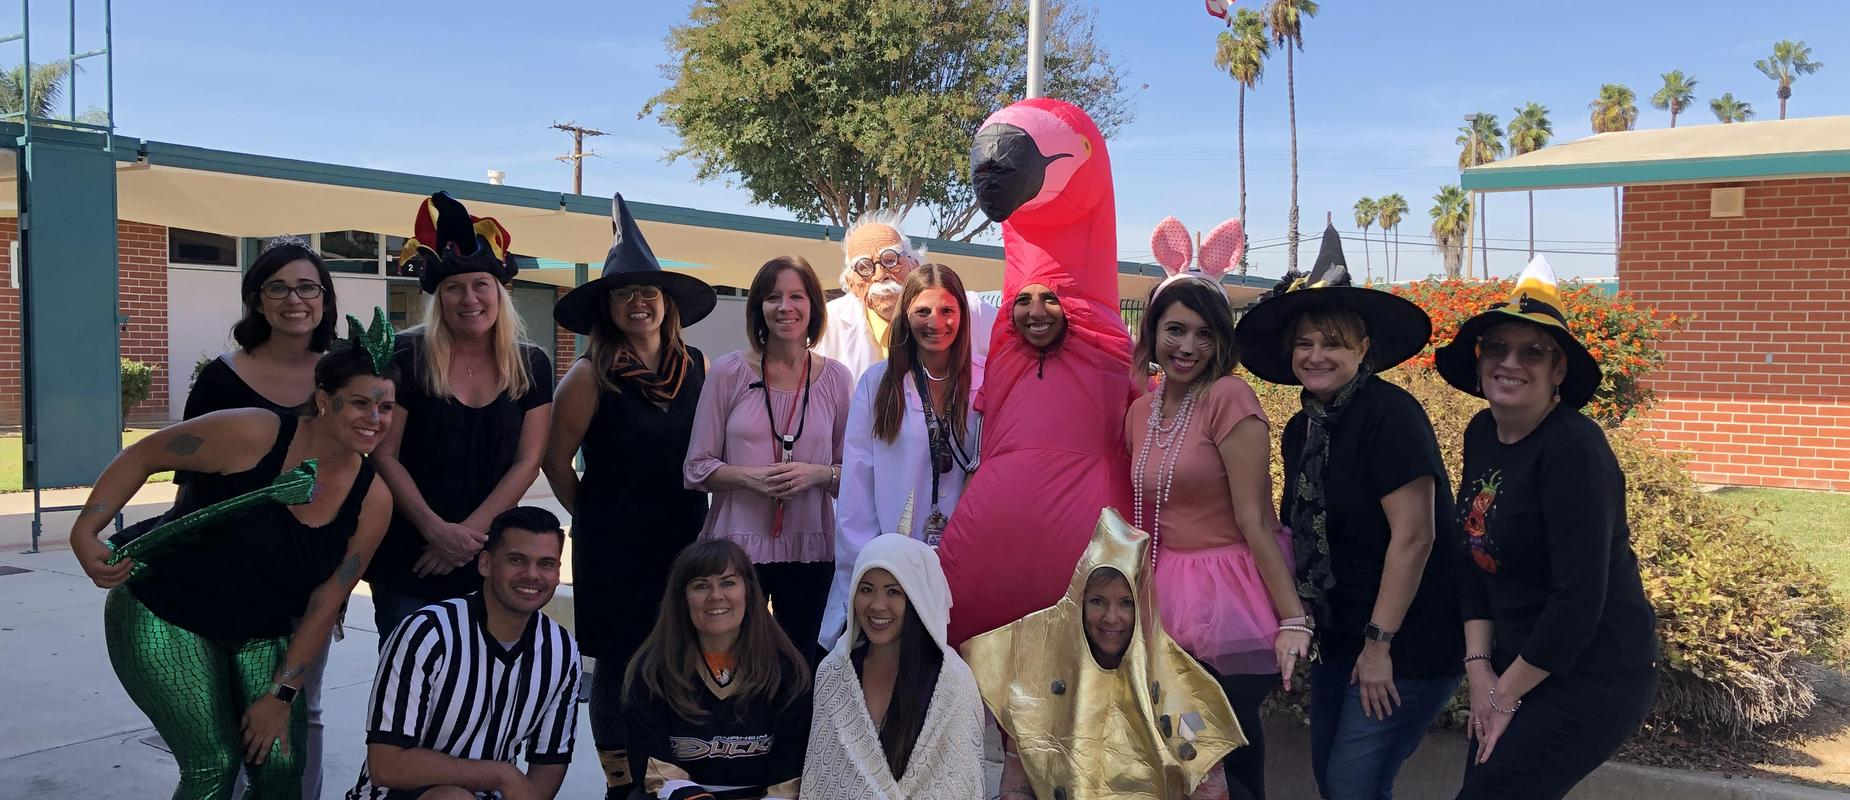 Halloween with Willmore Staff